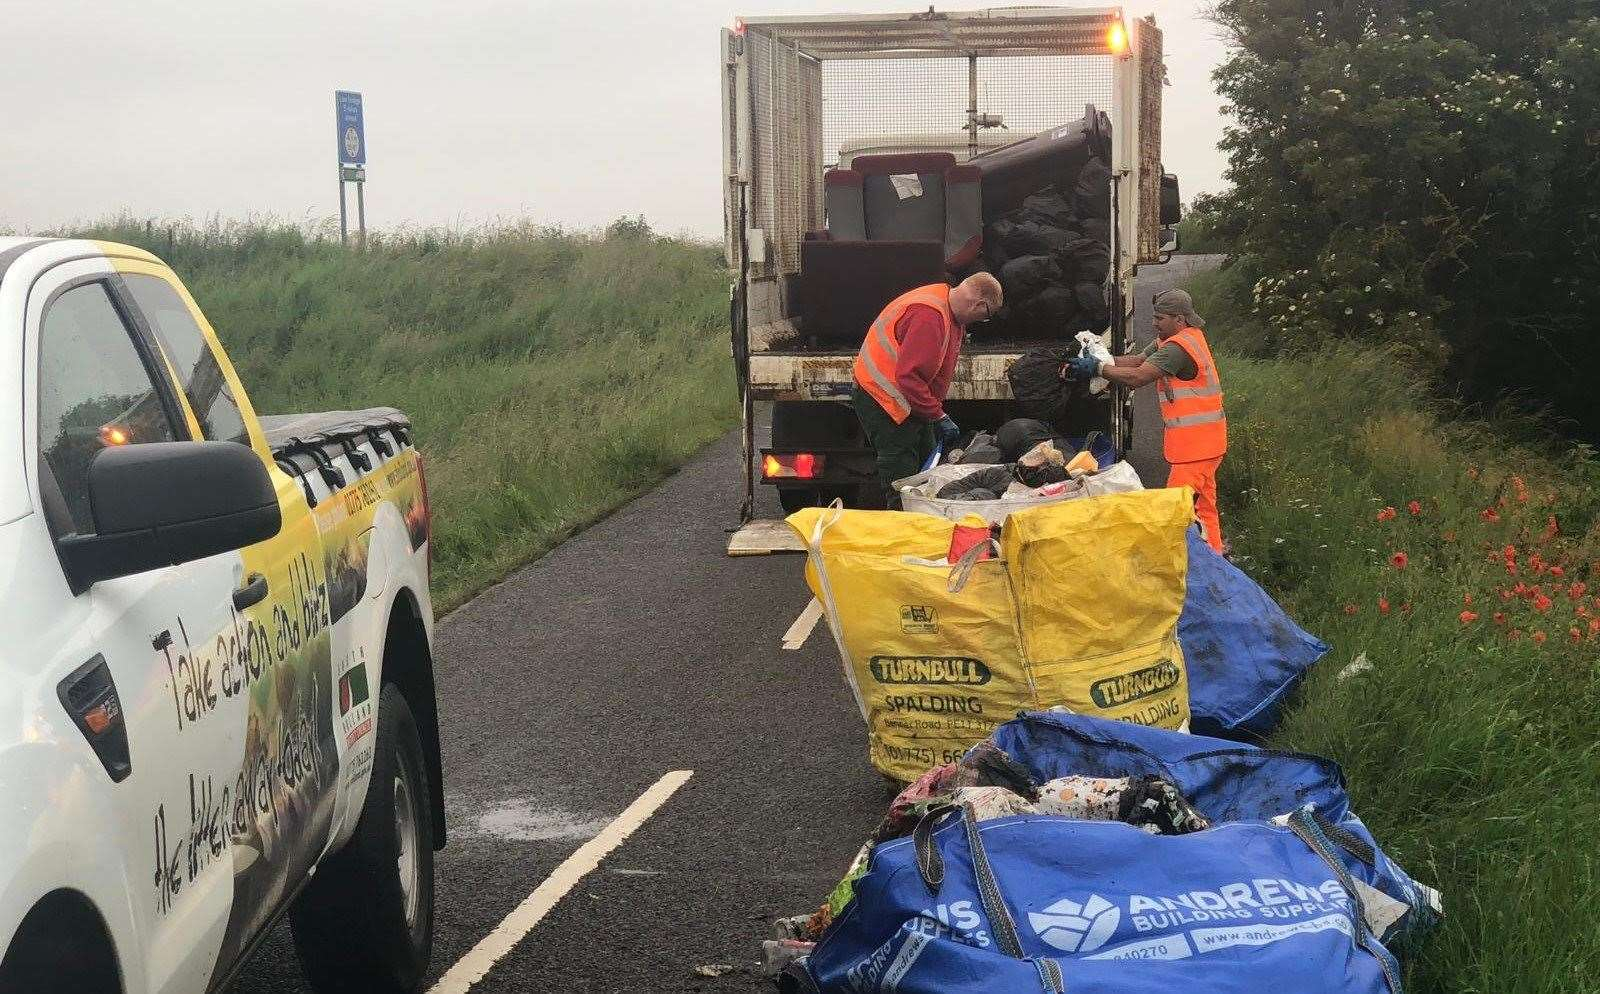 South Holland District Council Waste team clears up fly-tipping (26978603)